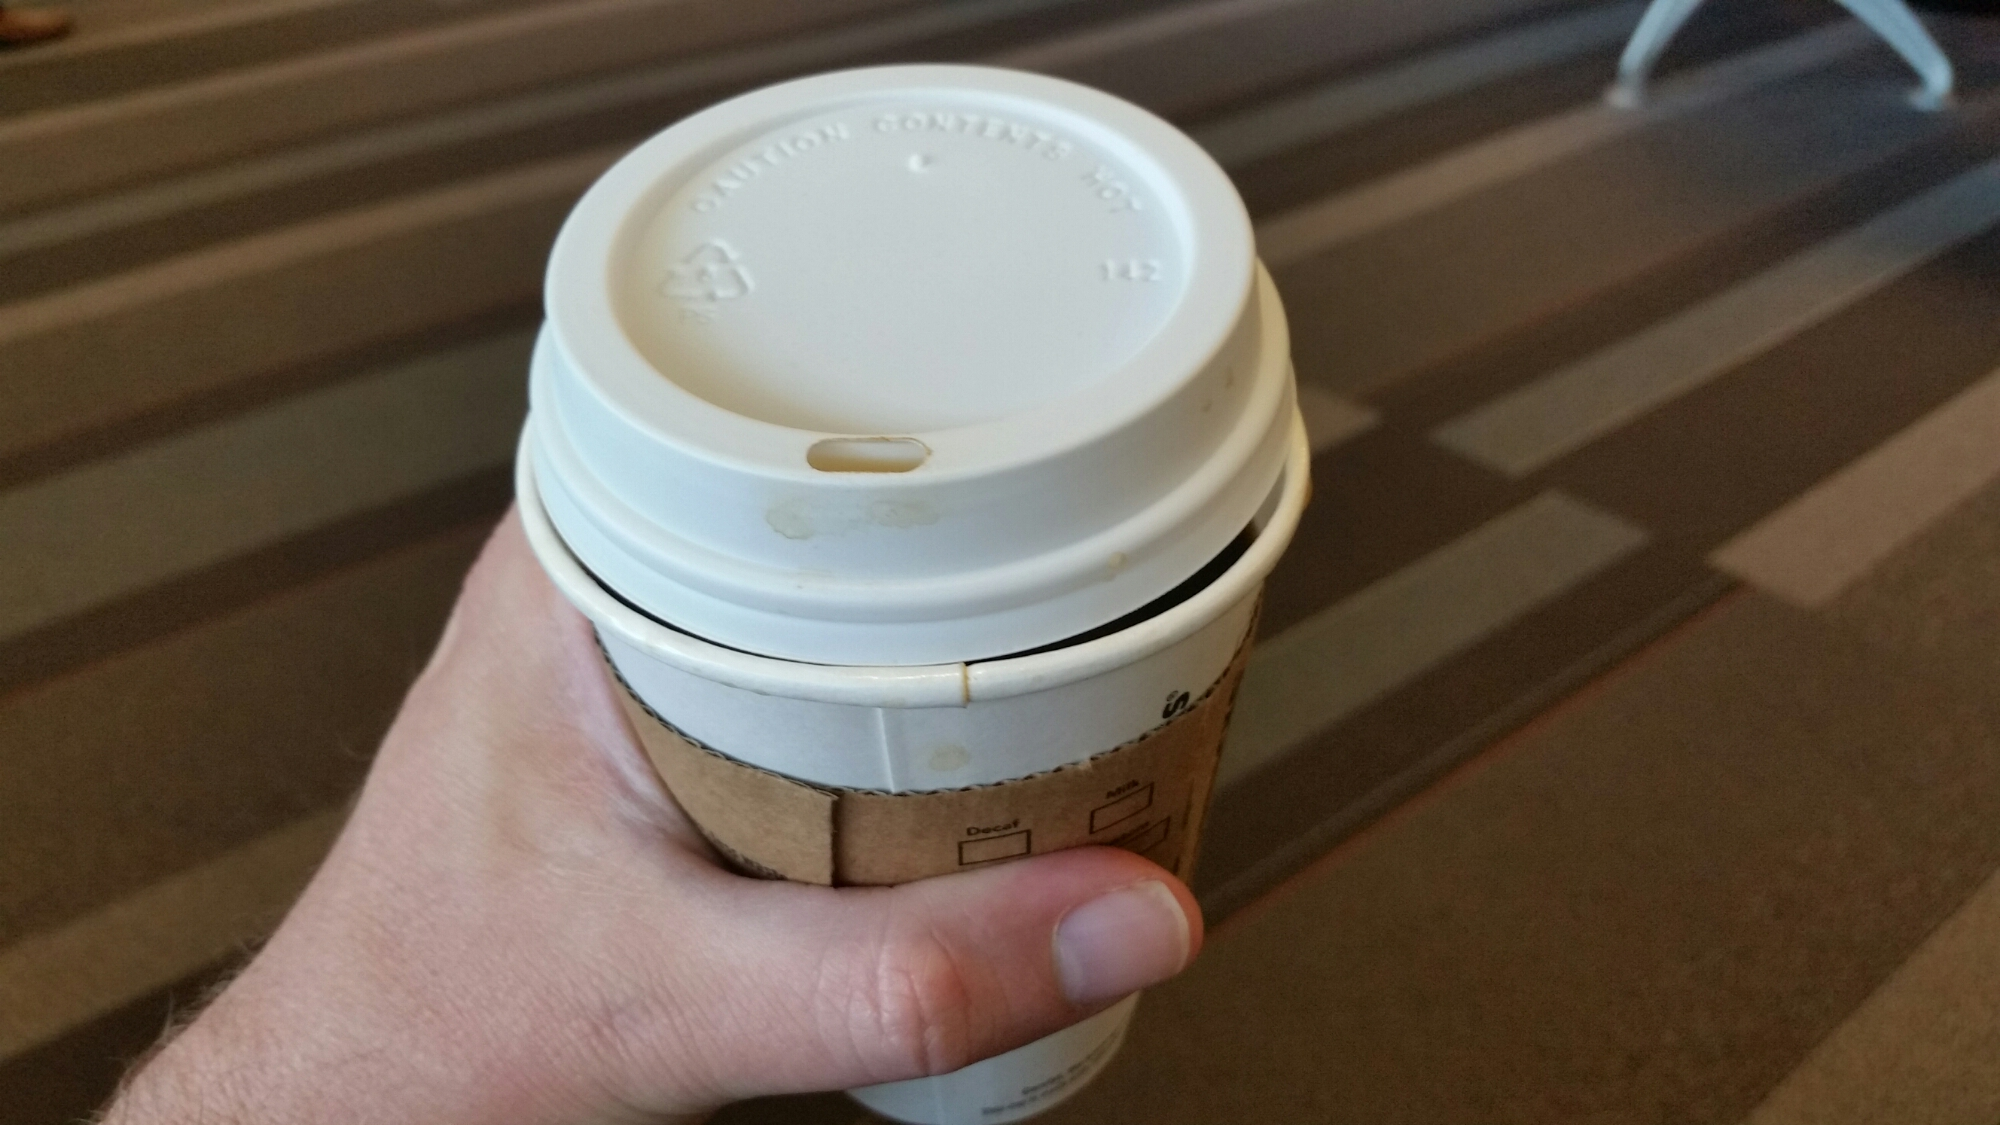 what's wrong with this coffee cup?